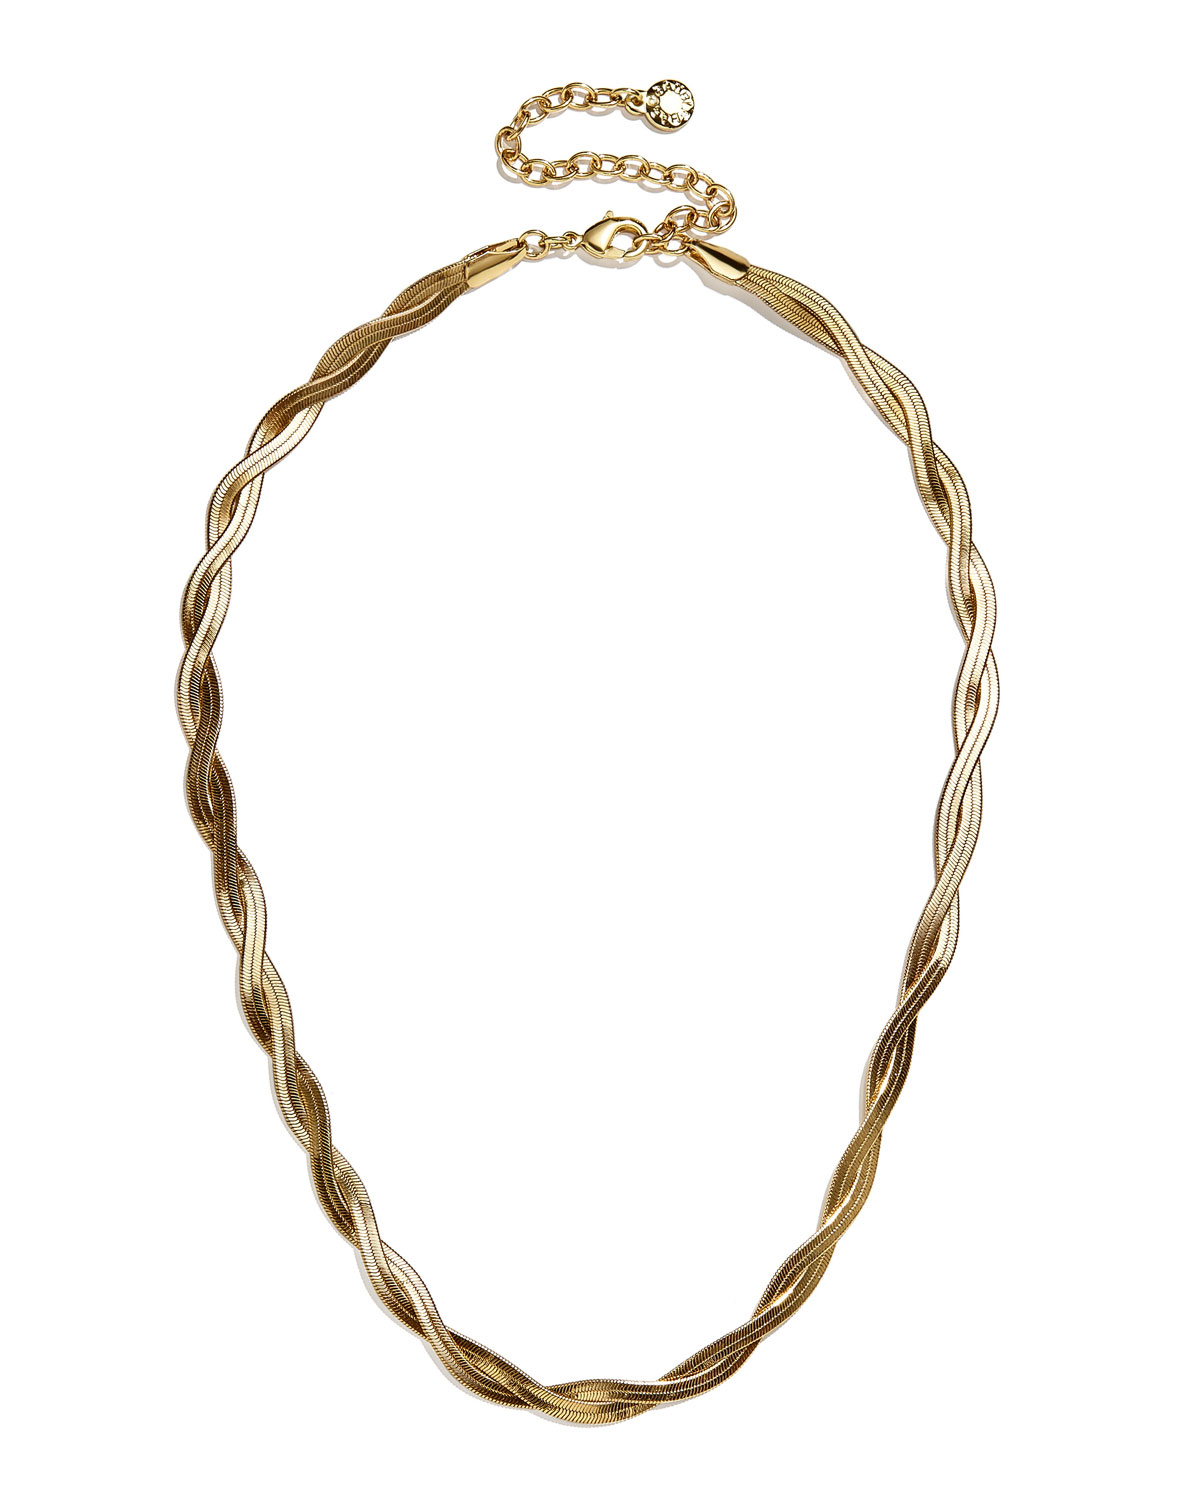 Braided Snake Chain Necklace